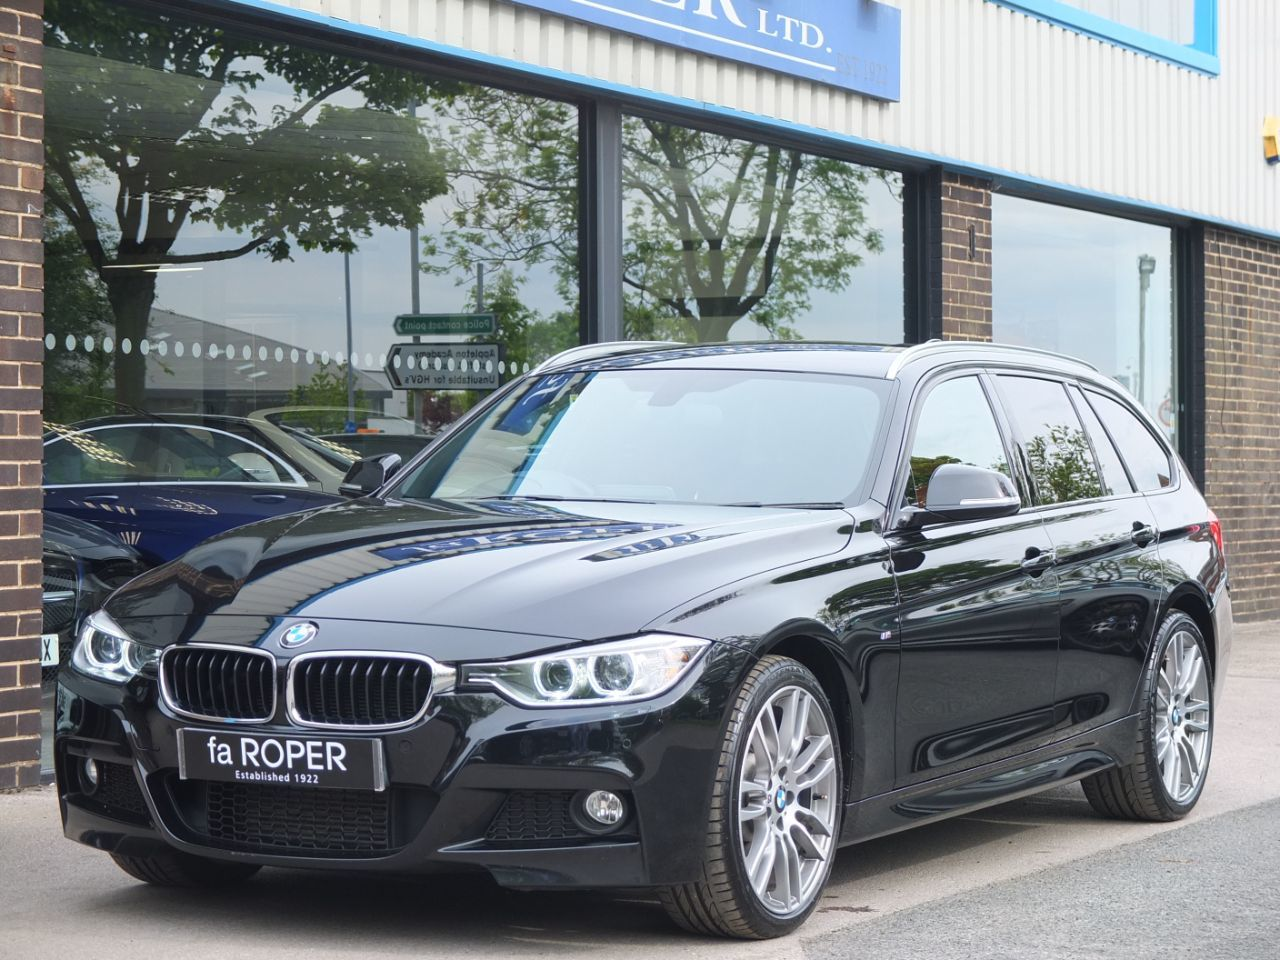 BMW 3 Series 3.0 330d xDrive Touring M Sport Plus Auto Estate Diesel Black Sapphire MetallicBMW 3 Series 3.0 330d xDrive Touring M Sport Plus Auto Estate Diesel Black Sapphire Metallic at fa Roper Ltd Bradford